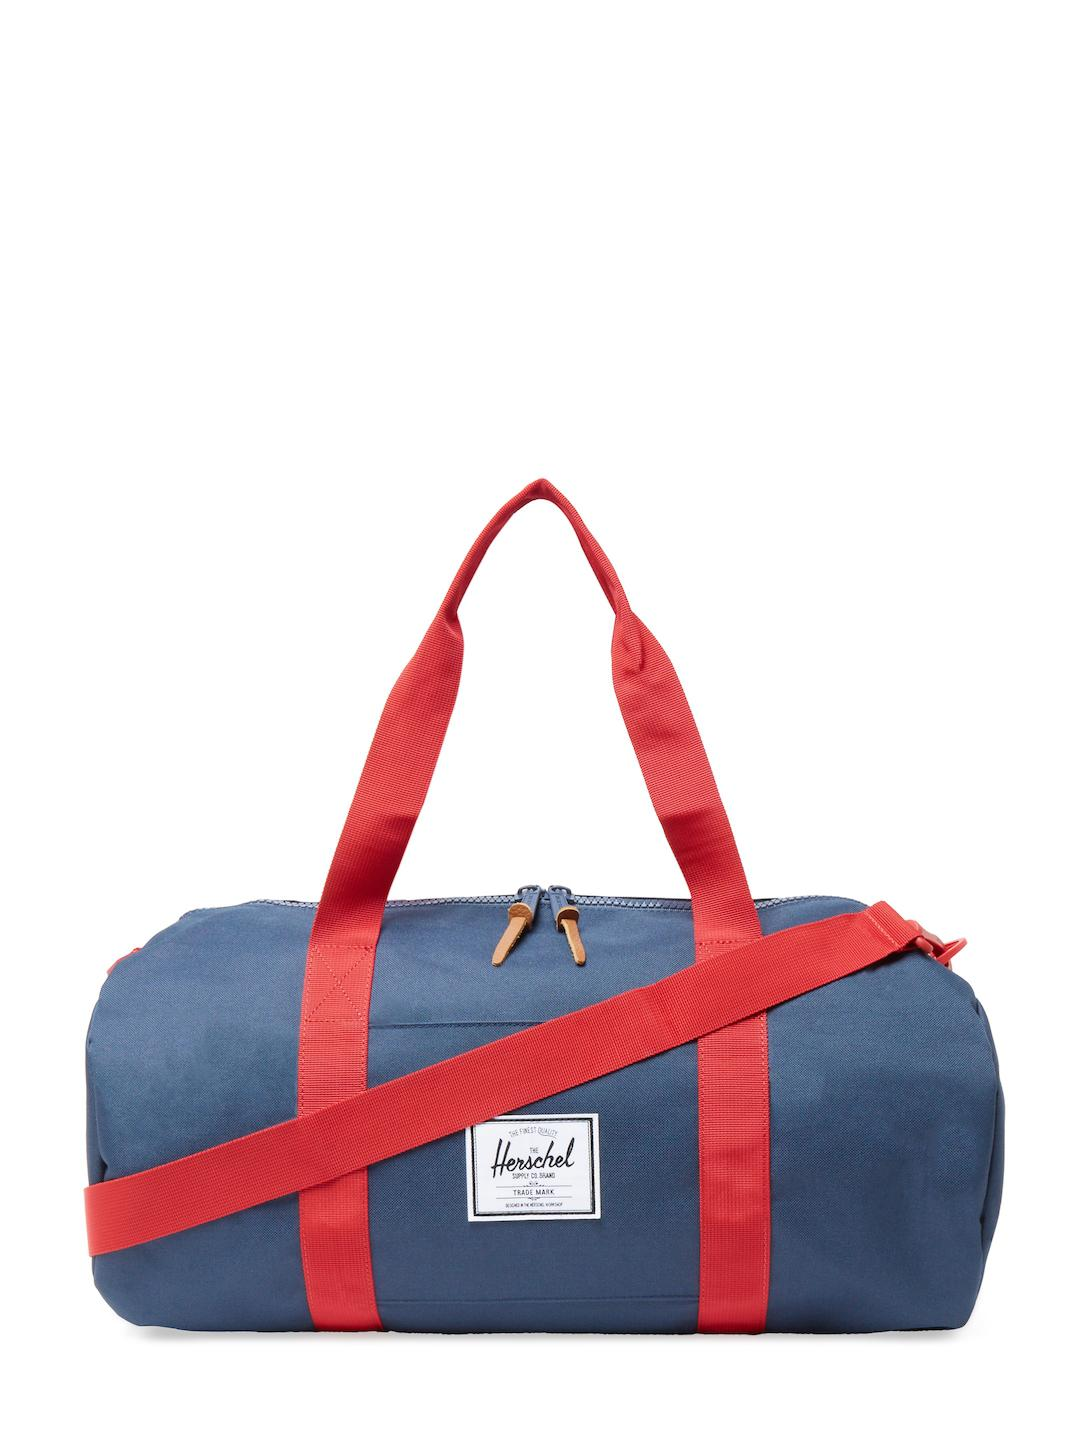 4ce7c0bd28e2 Lyst - Herschel Supply Co. Sutton Mid-volume Duffle Bag in Red for Men